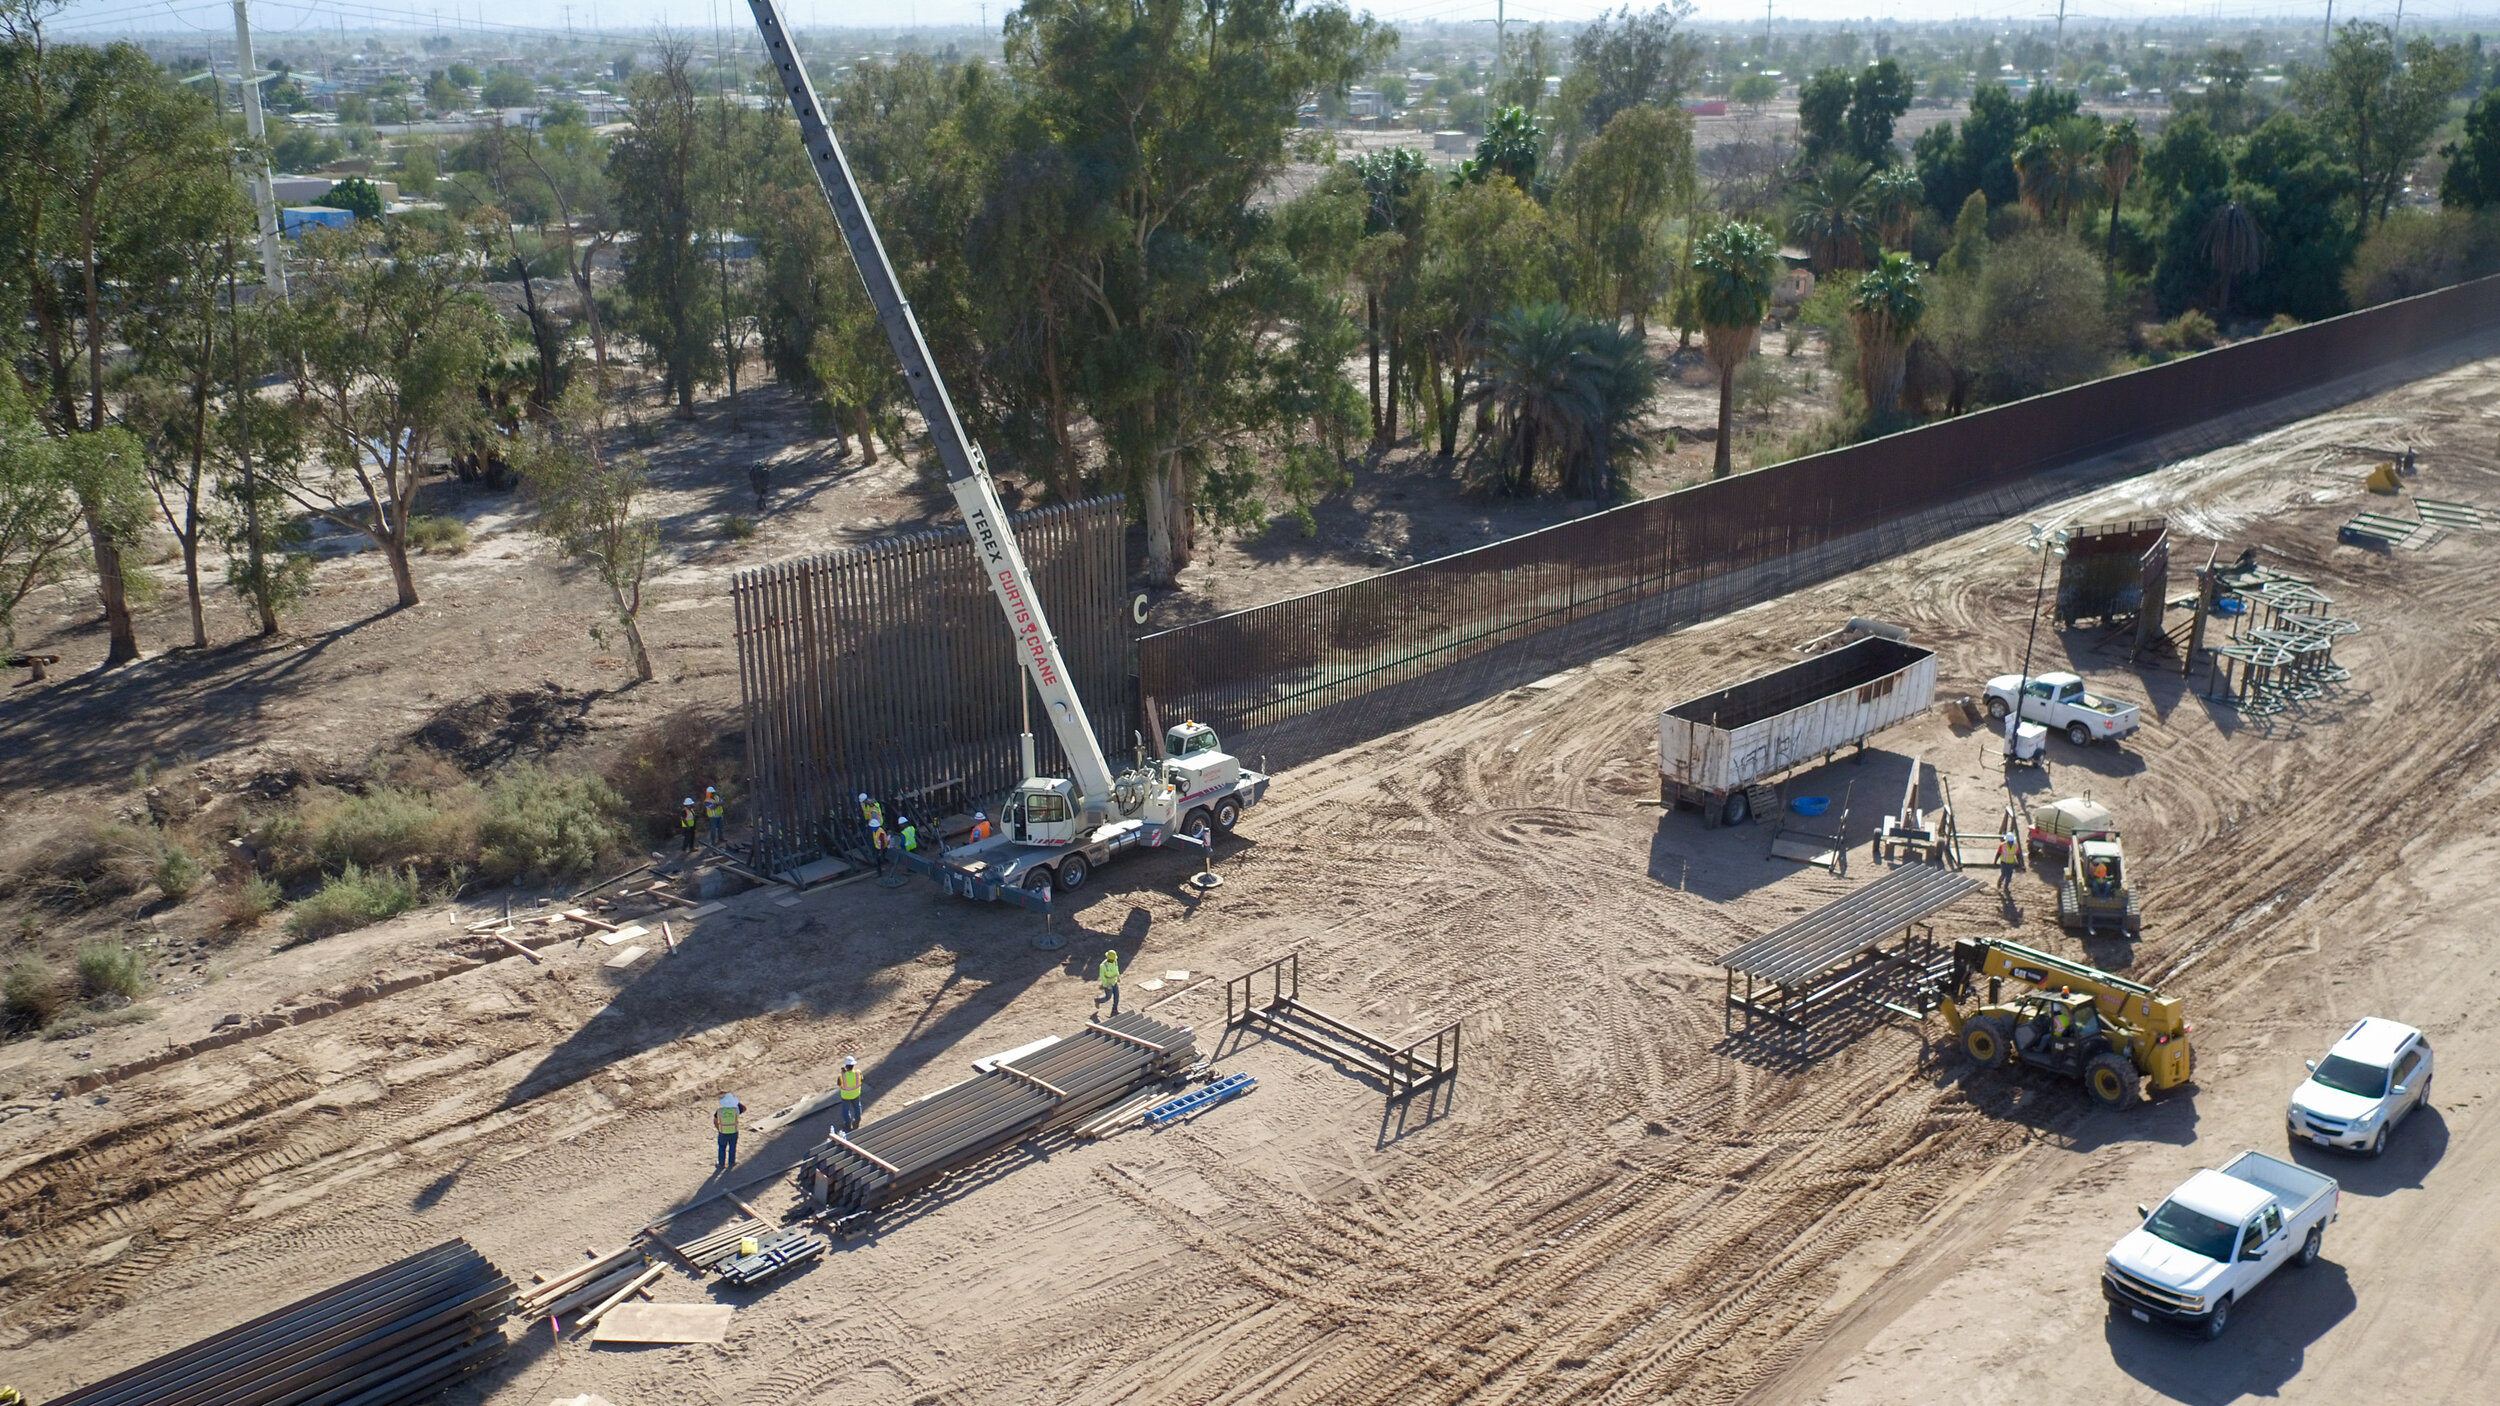 el-centro-border-wall-replacement-project_26665127148_o.jpg